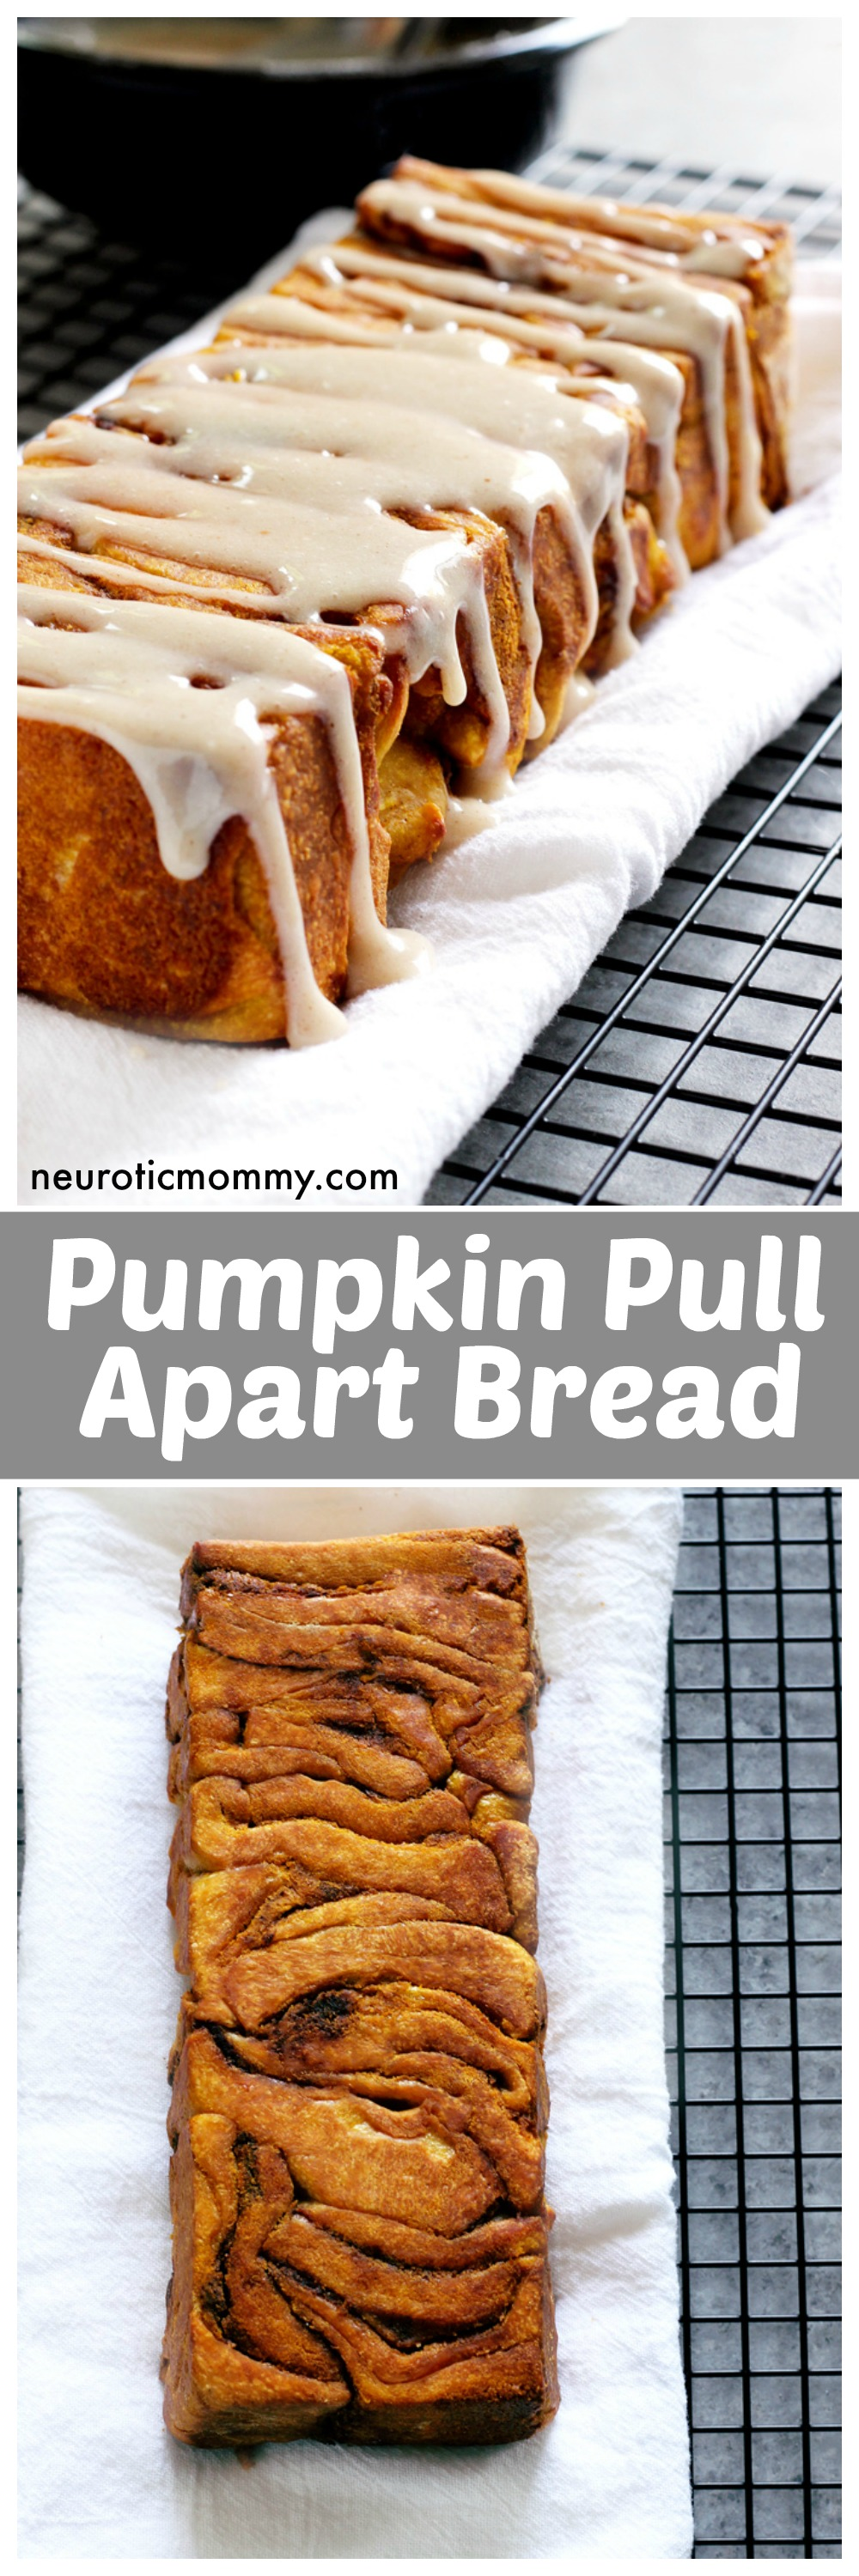 Pumpkin Pull Apart Bread - the perfect comforting snack to kick off fall season with. Drizzled with pumpkin spice icing, you cannot go wrong! NeuroticMommy.com #vegan #fall #breads